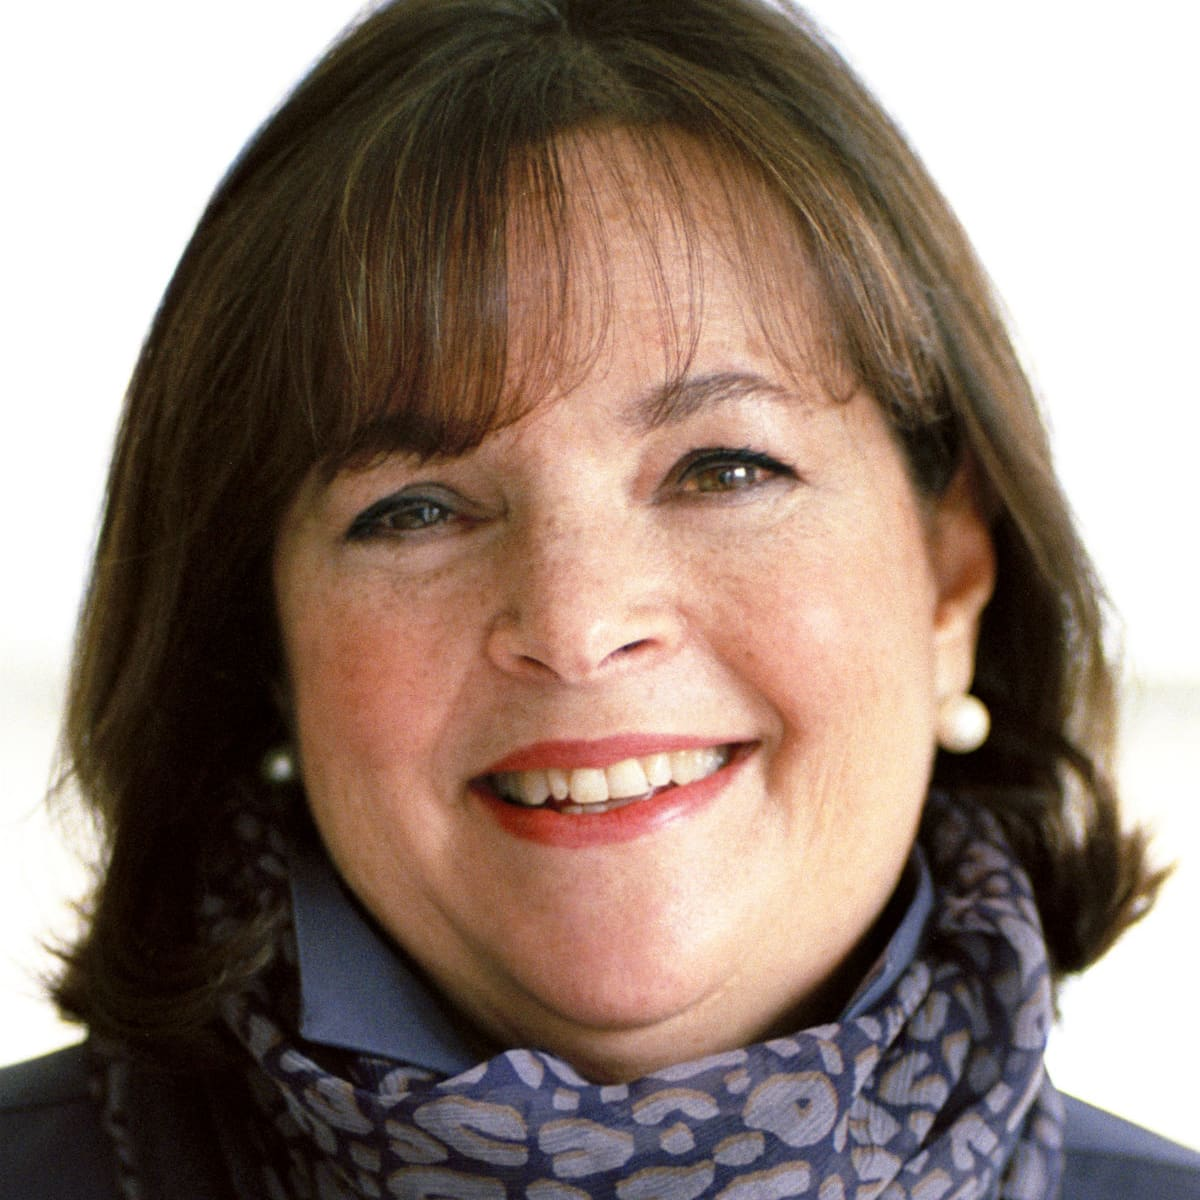 Ina Garten, the Barefoot Contessa